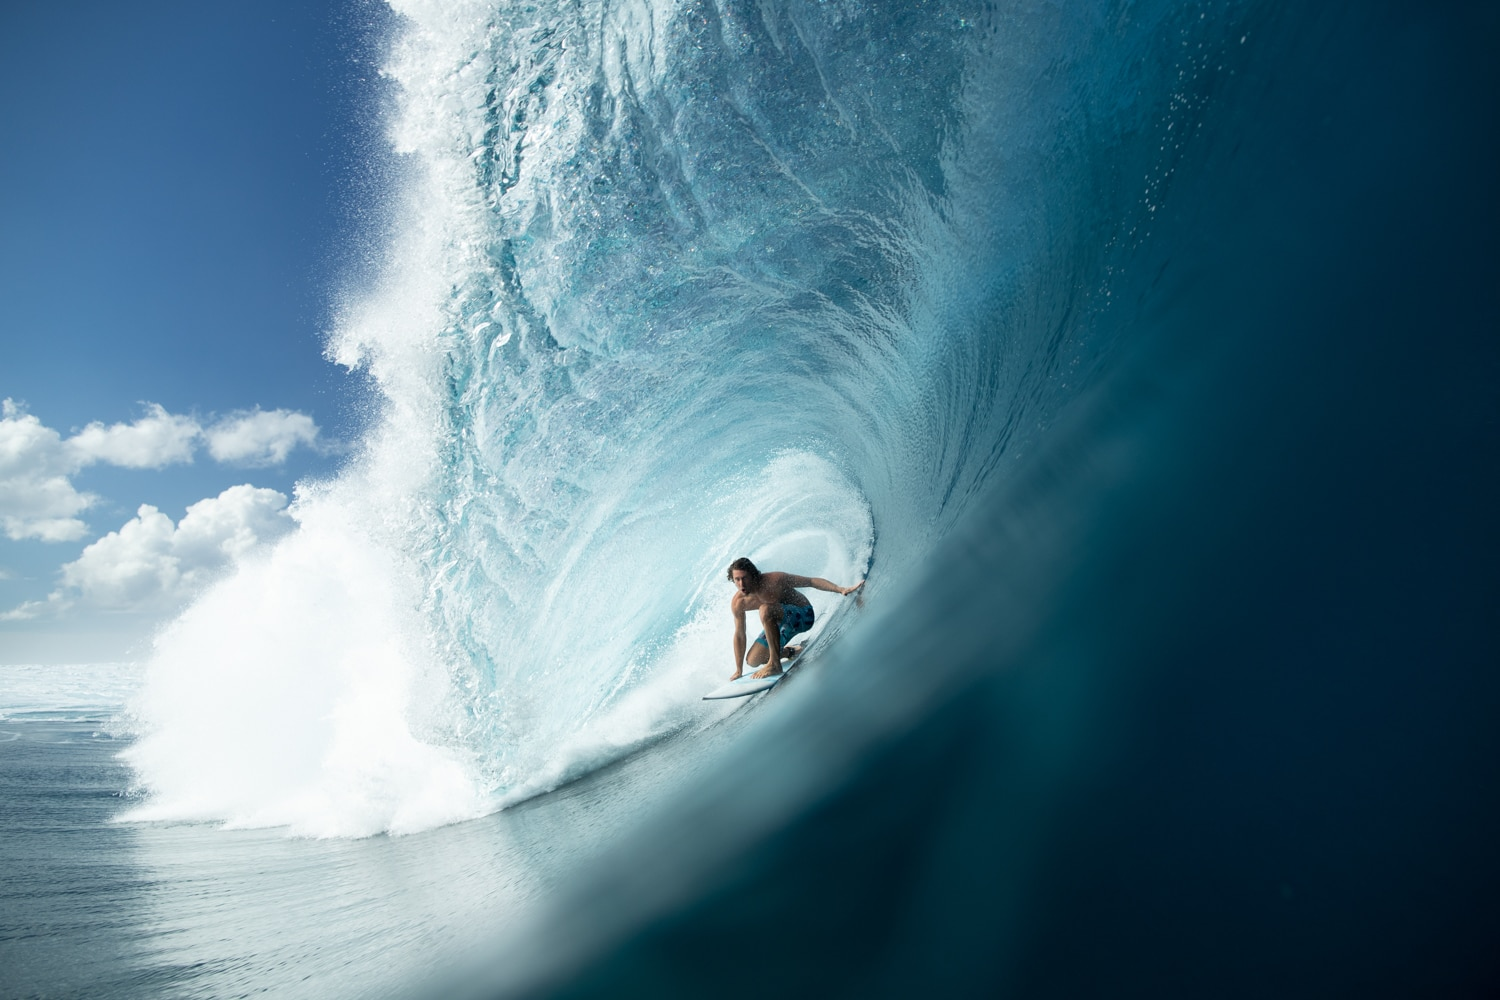 Ben Thouard, Category Semi-Finalist 2019: RAW